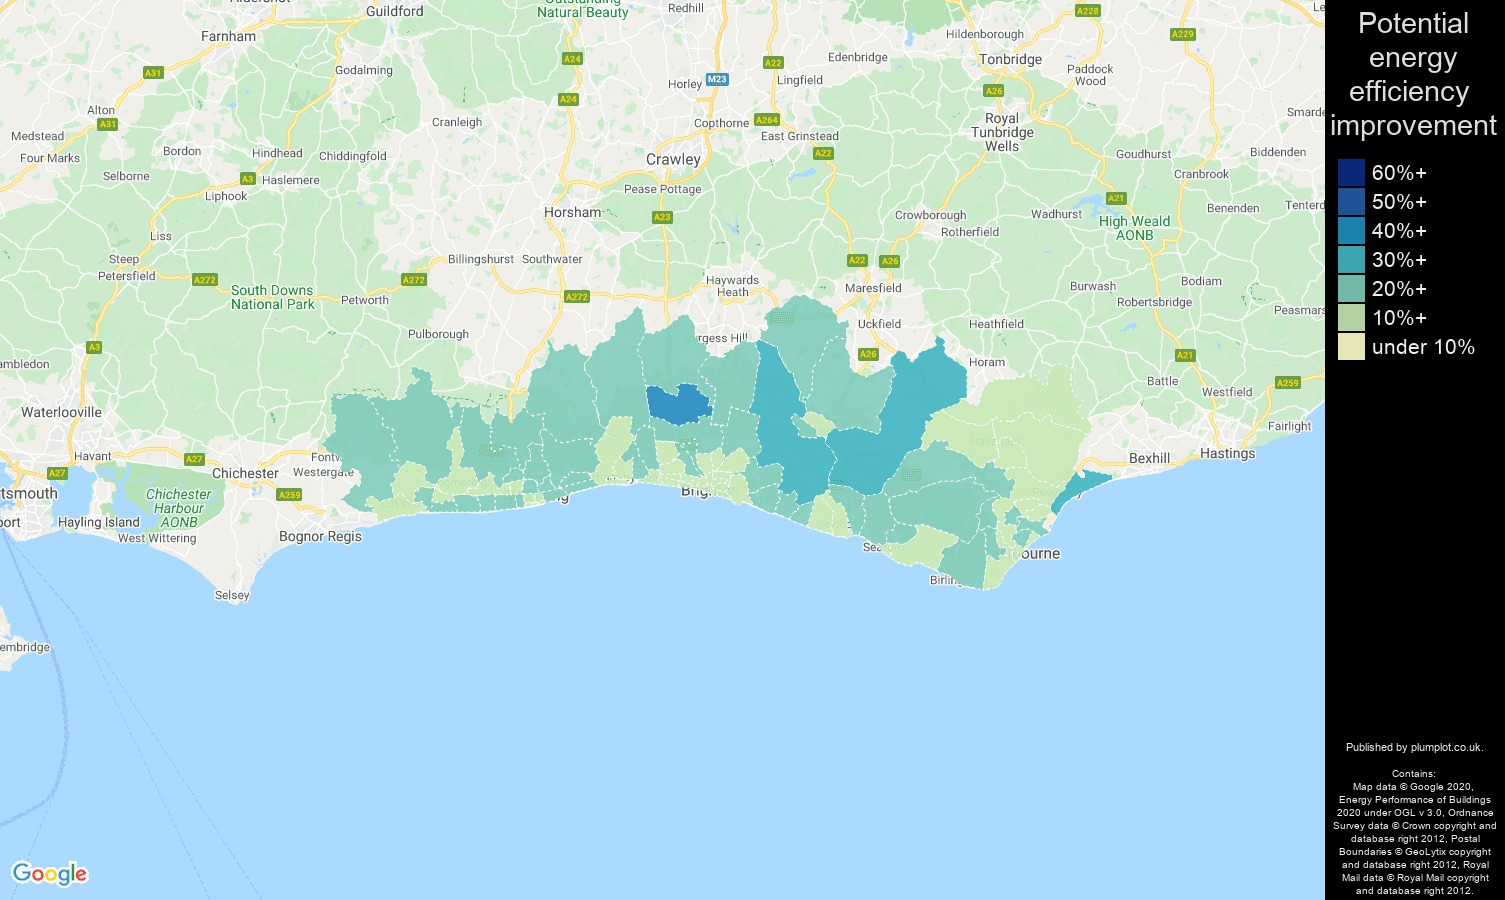 Brighton map of potential energy efficiency improvement of properties